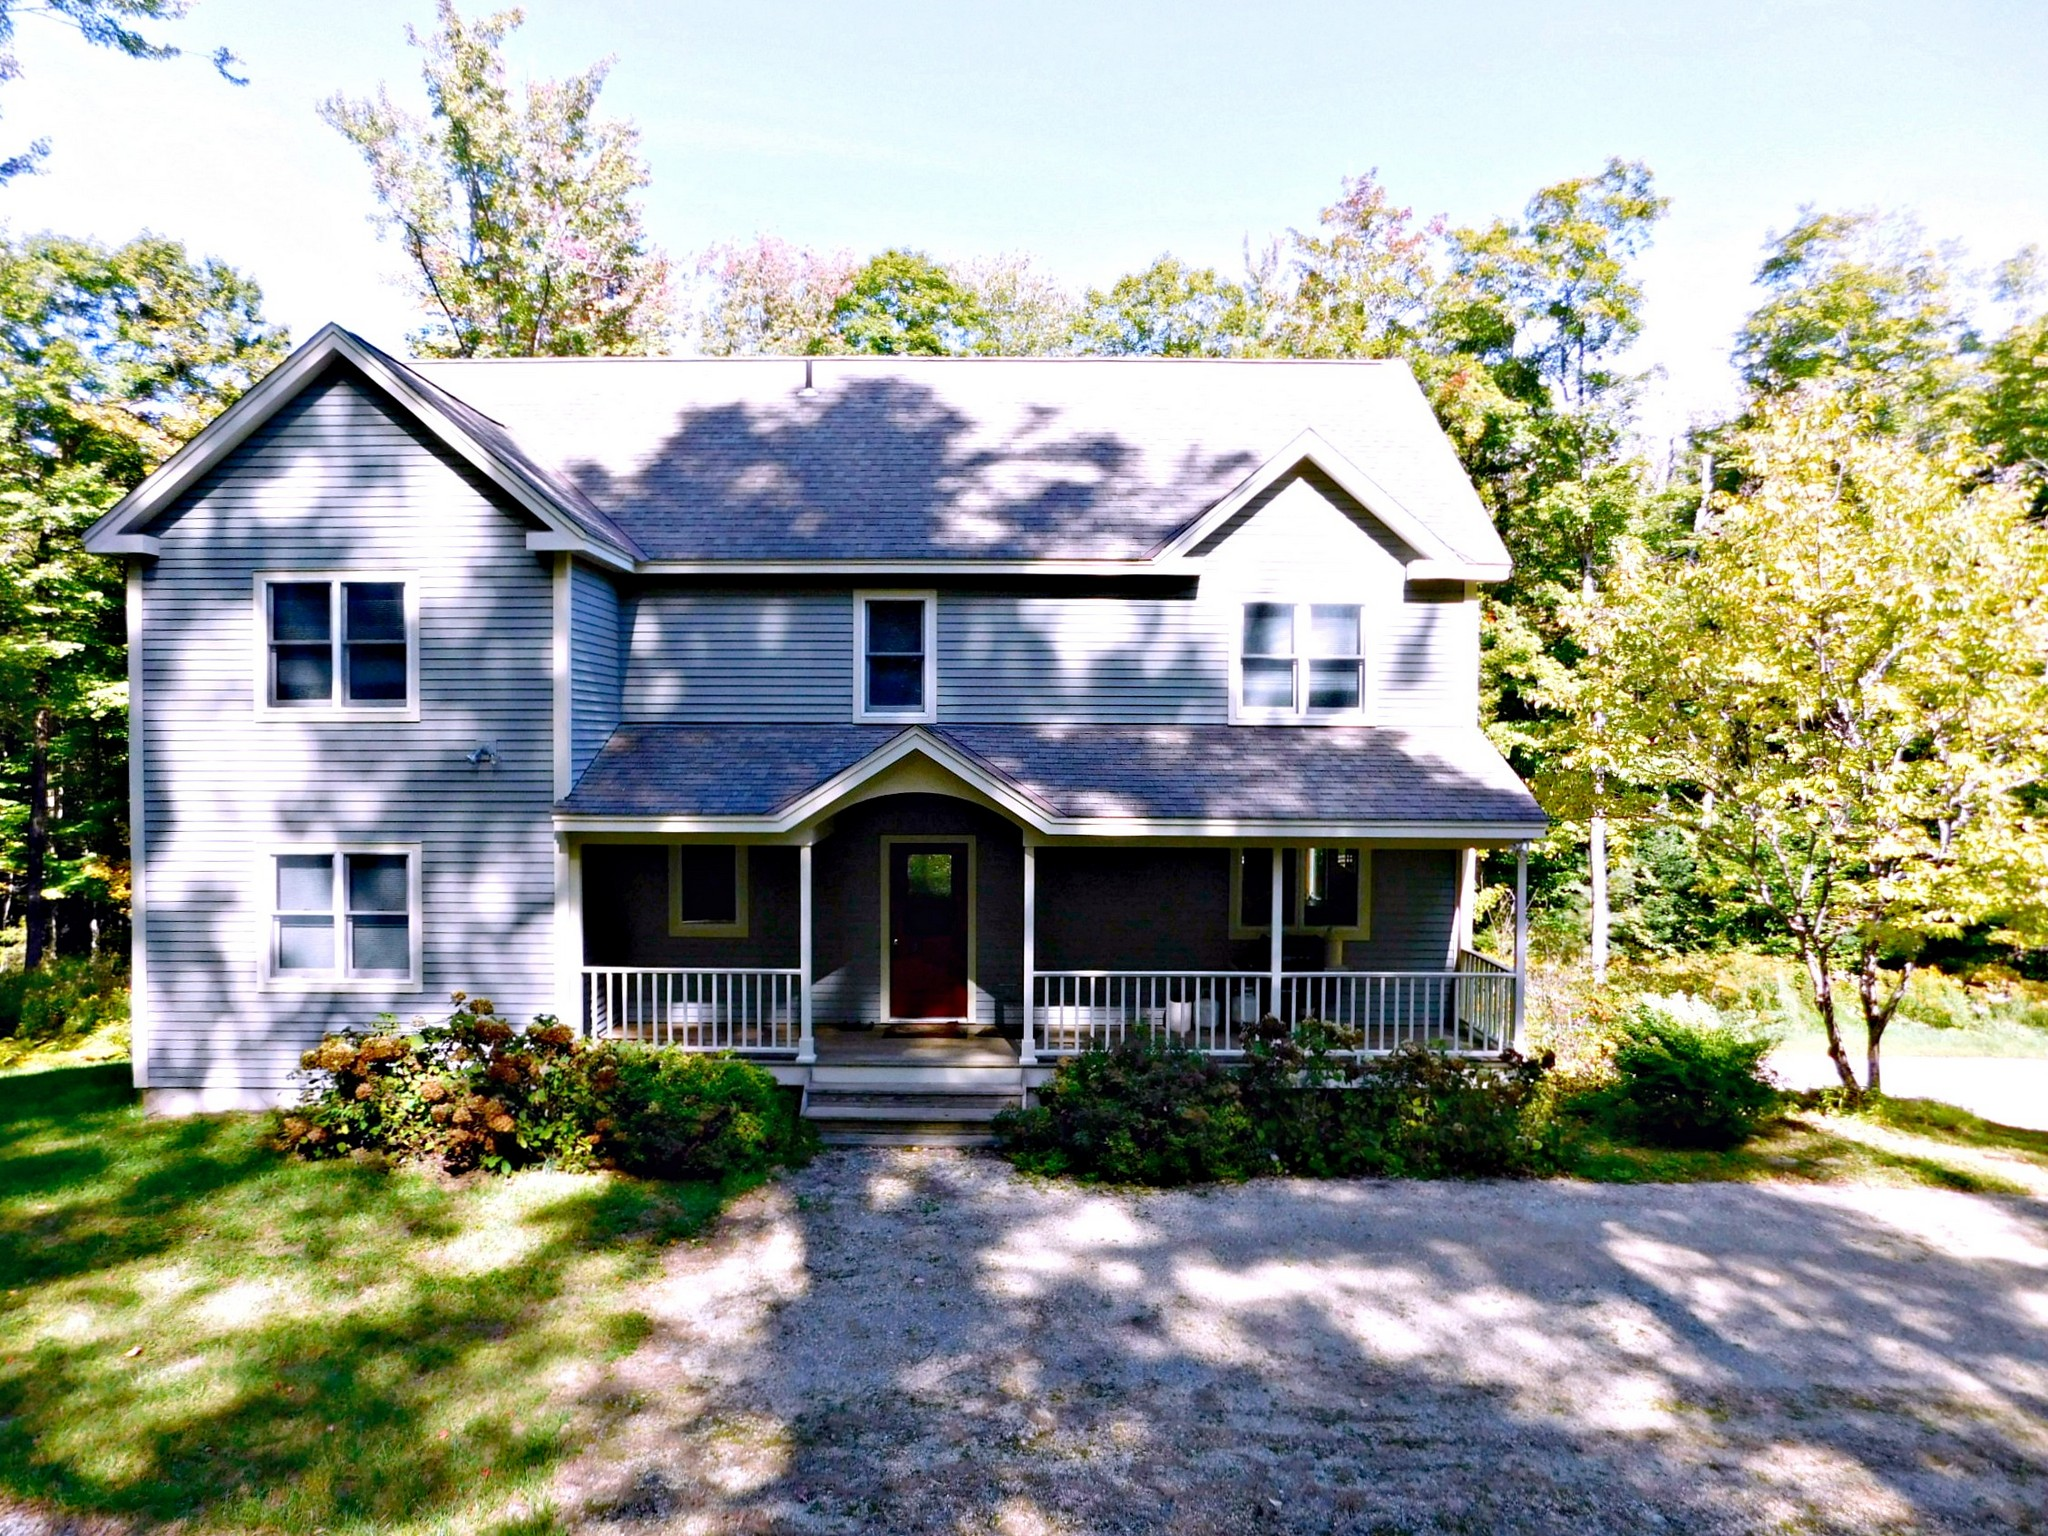 Single Family Home for Sale at 63 Lake Road, Winhall 63 Lake Rd Winhall, Vermont, 05340 United States